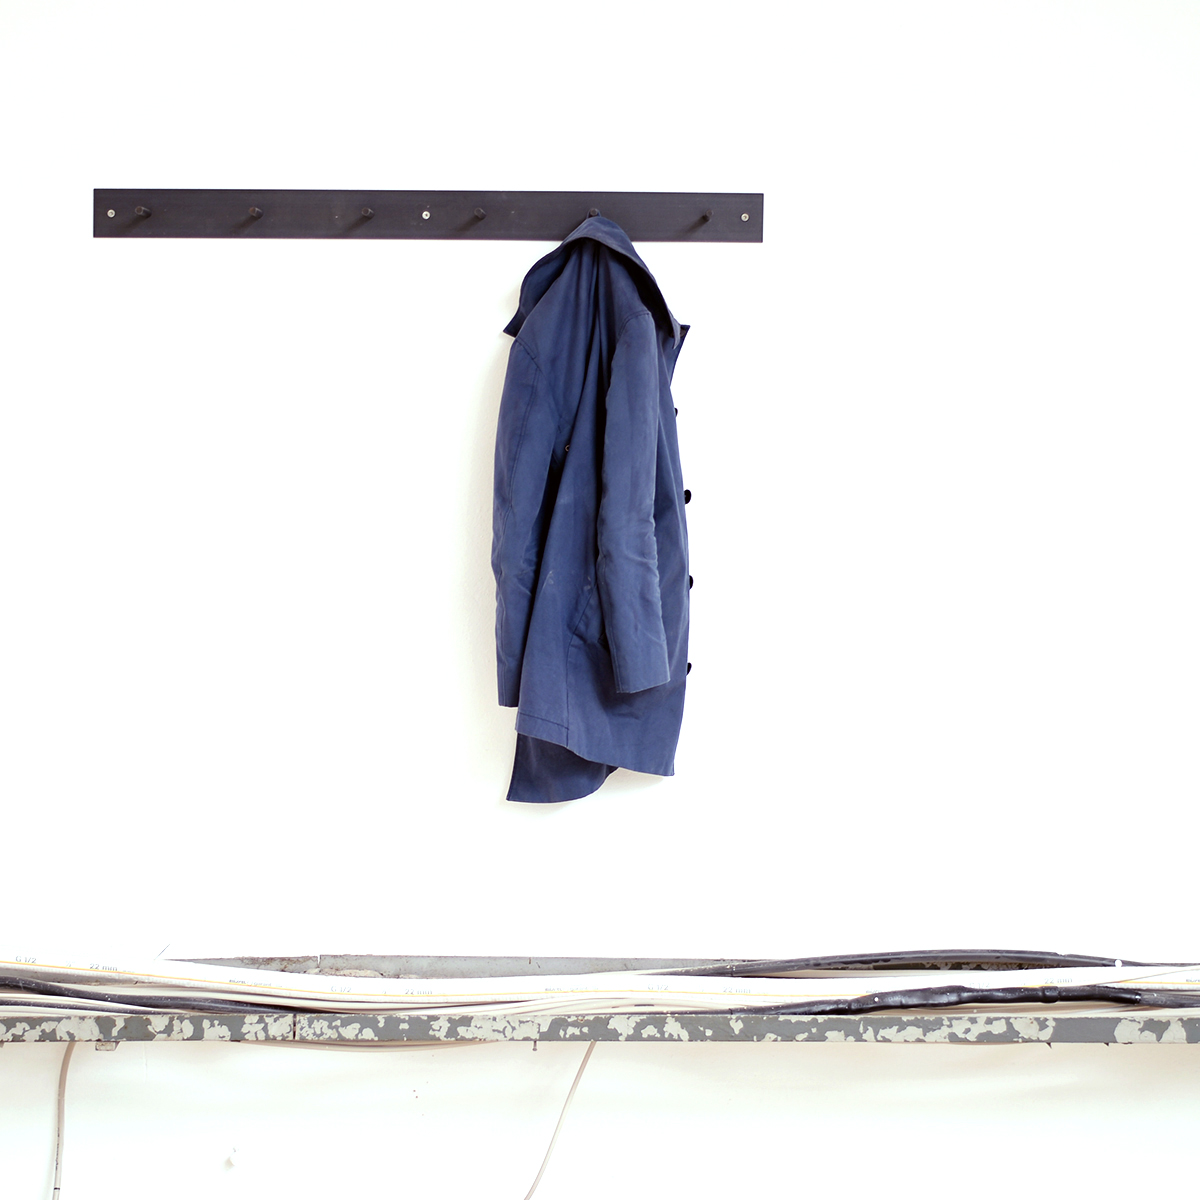 Hellogoodbye coat rack is made of a flat piece of crude steel plus six  round hooks